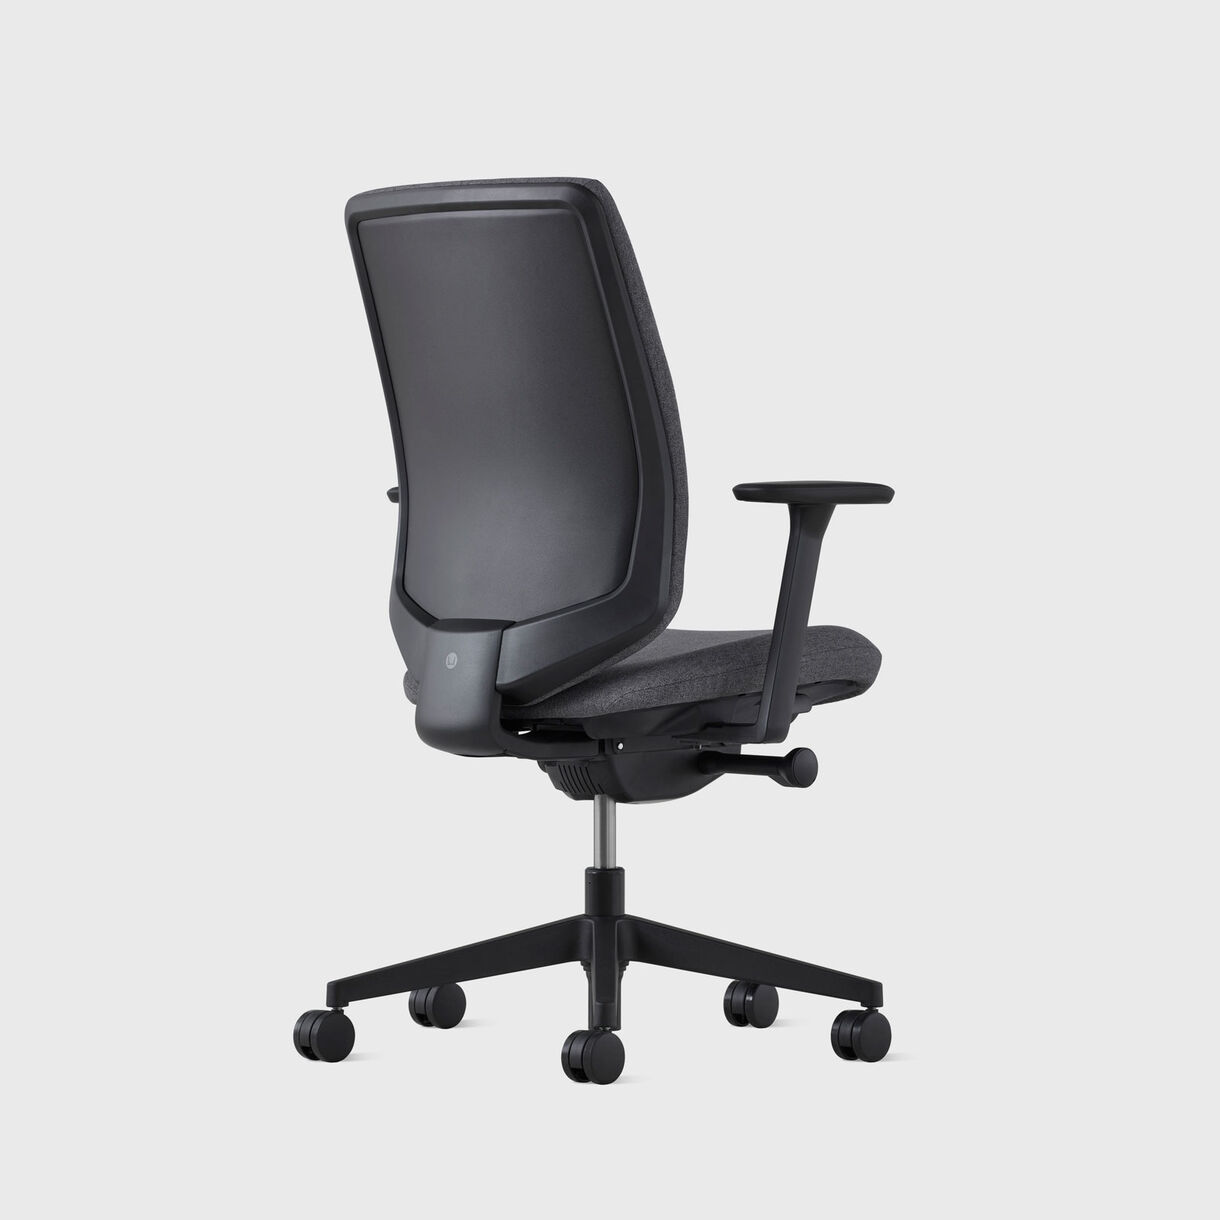 Verus Upholstered Back Task Chair - Black Frame & Bayou Upholstery - Fully Adjustable Arms